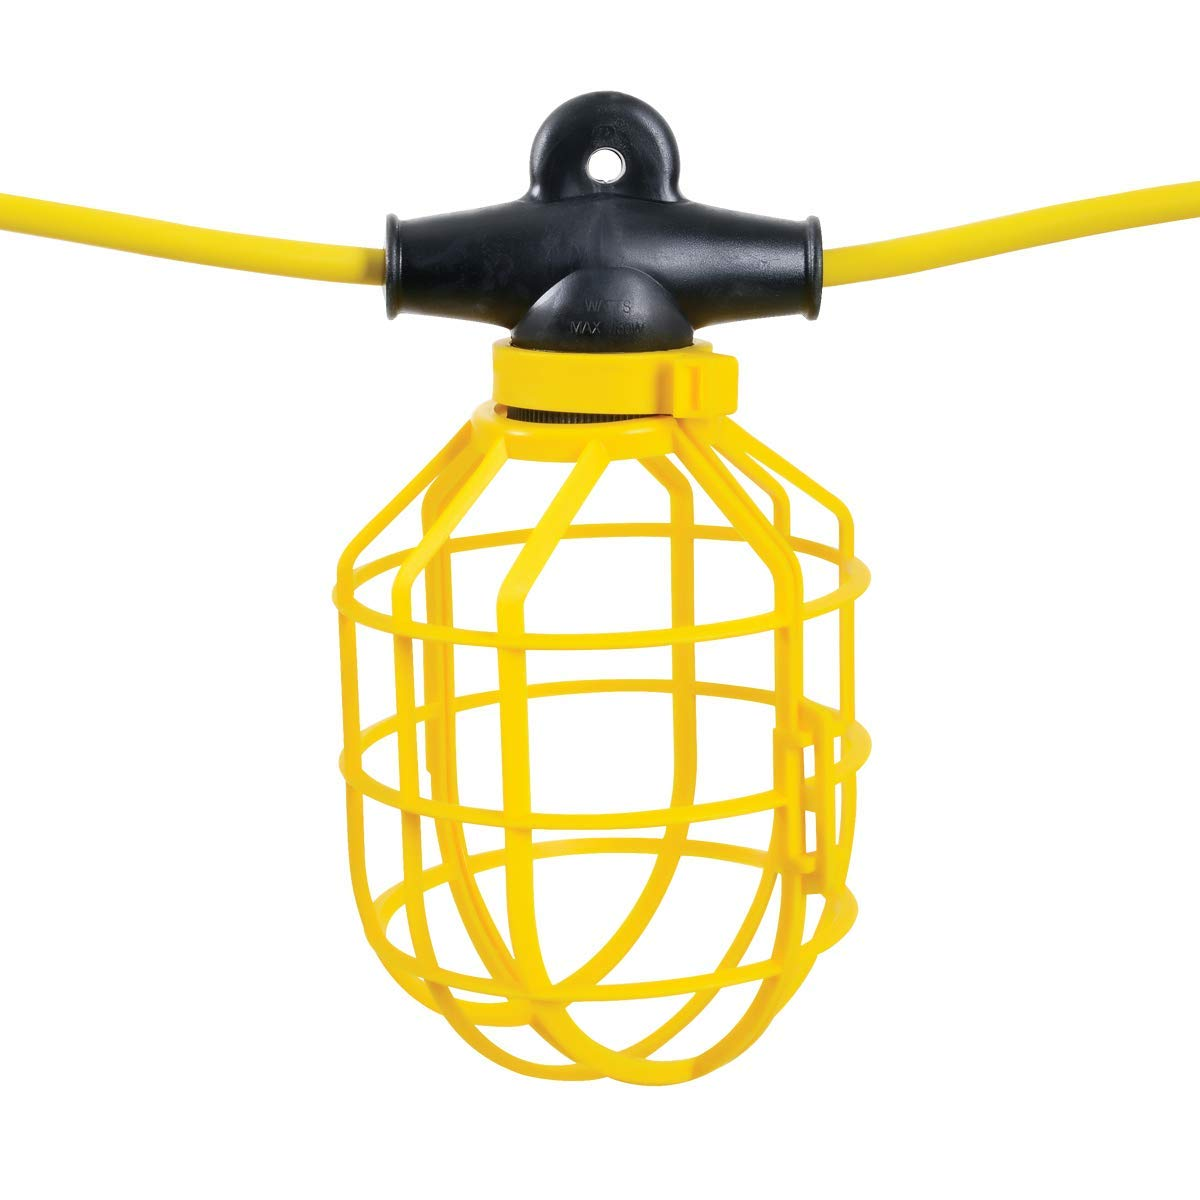 REELWORKS Extension Cord String Work Lights 14AWG x 100' Feet SJTW Cable 10 Light Sockets Heavy Duty 12A 125VAC 1500W Polypropylene Bulb Cage Guards Yellow Commercial Contractor For Indoor/Outdoor Use